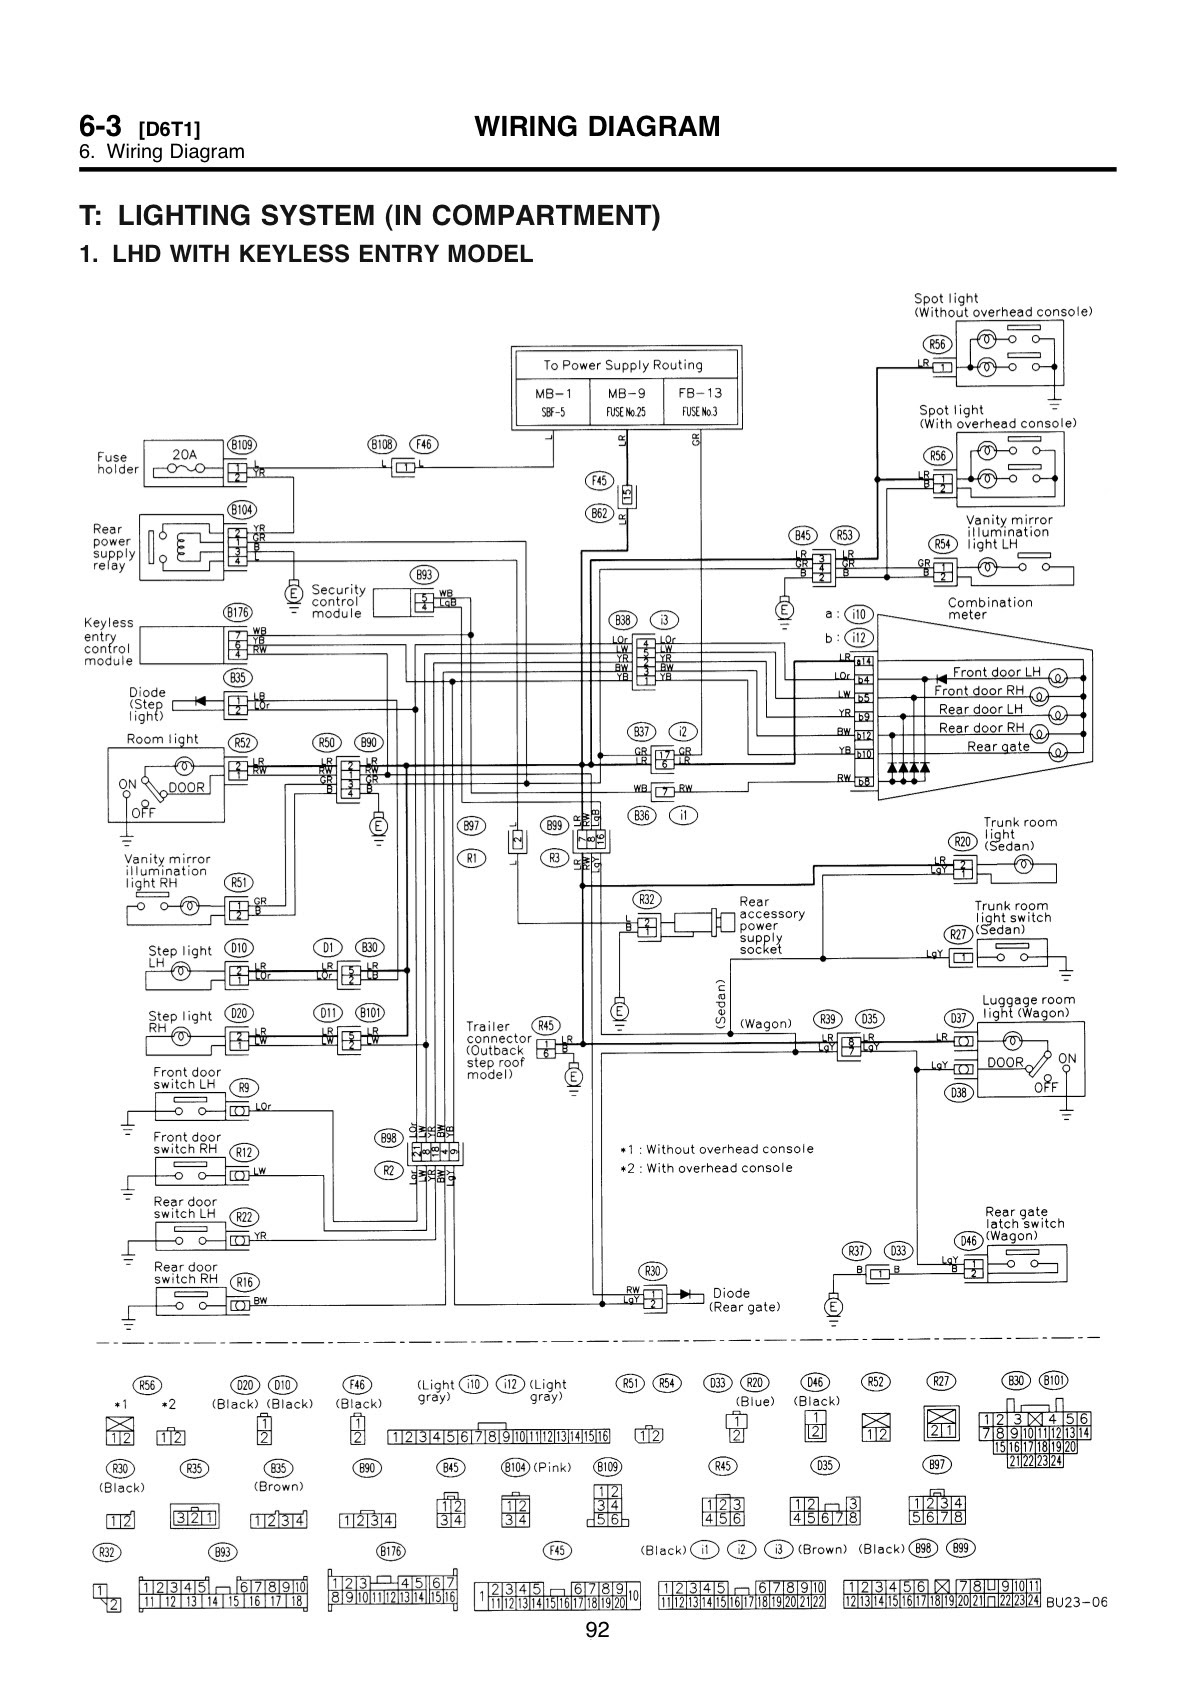 95 Subaru Legacy Headlight Wiring Schematic